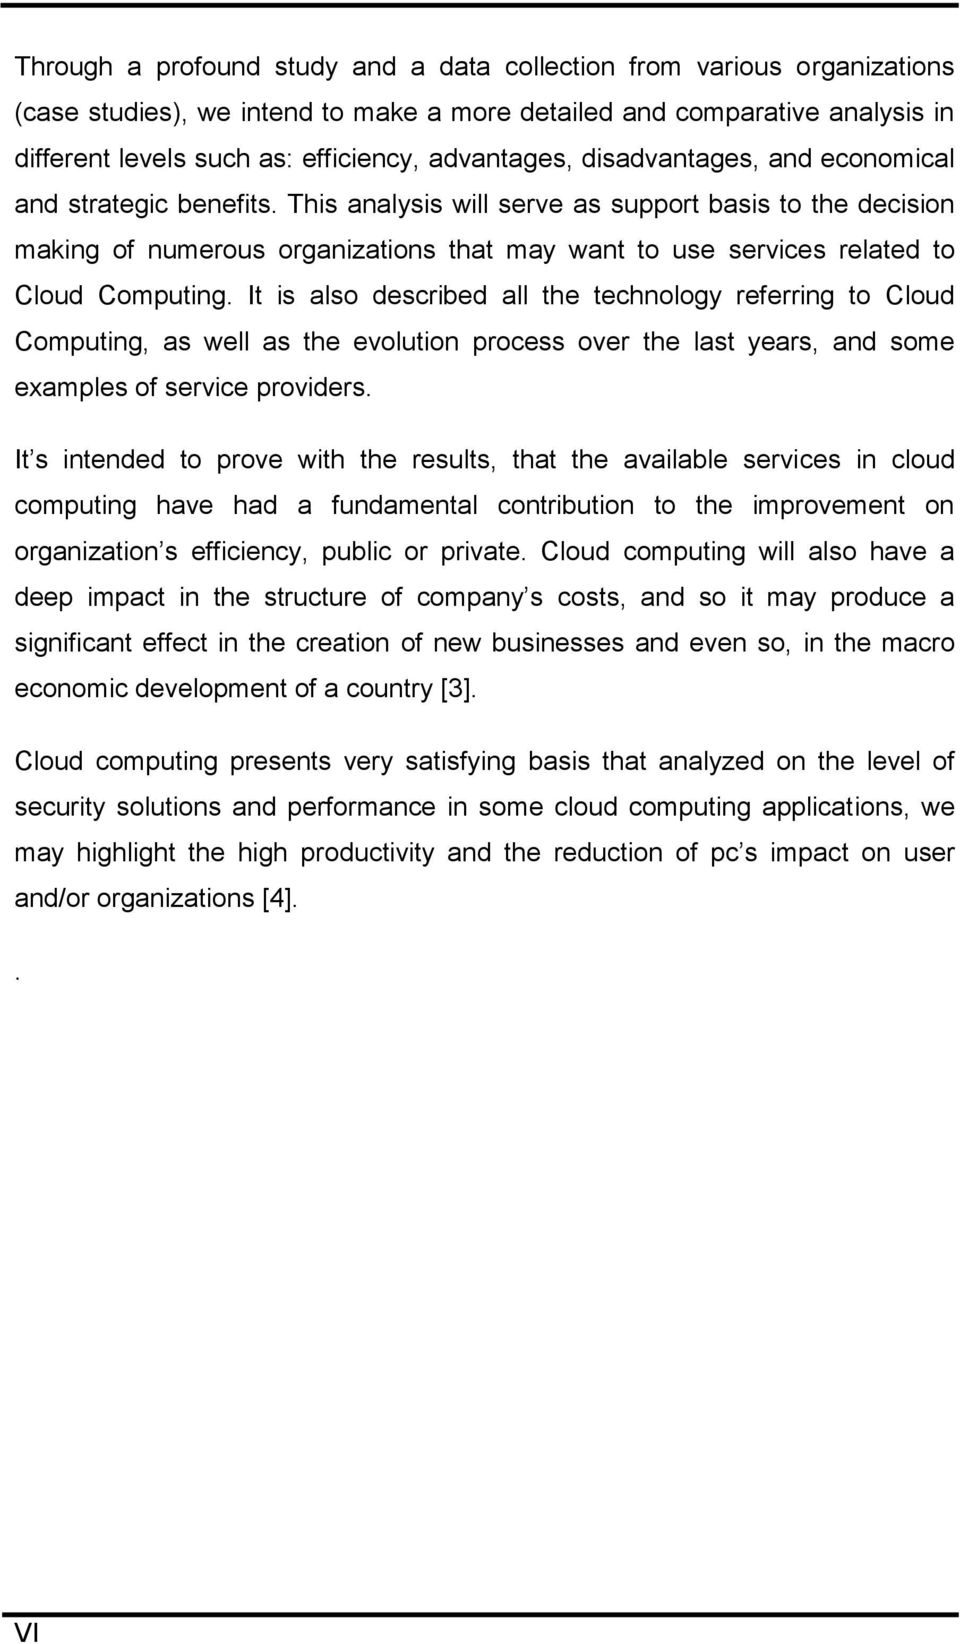 This analysis will serve as support basis to the decision making of numerous organizations that may want to use services related to Cloud Computing.